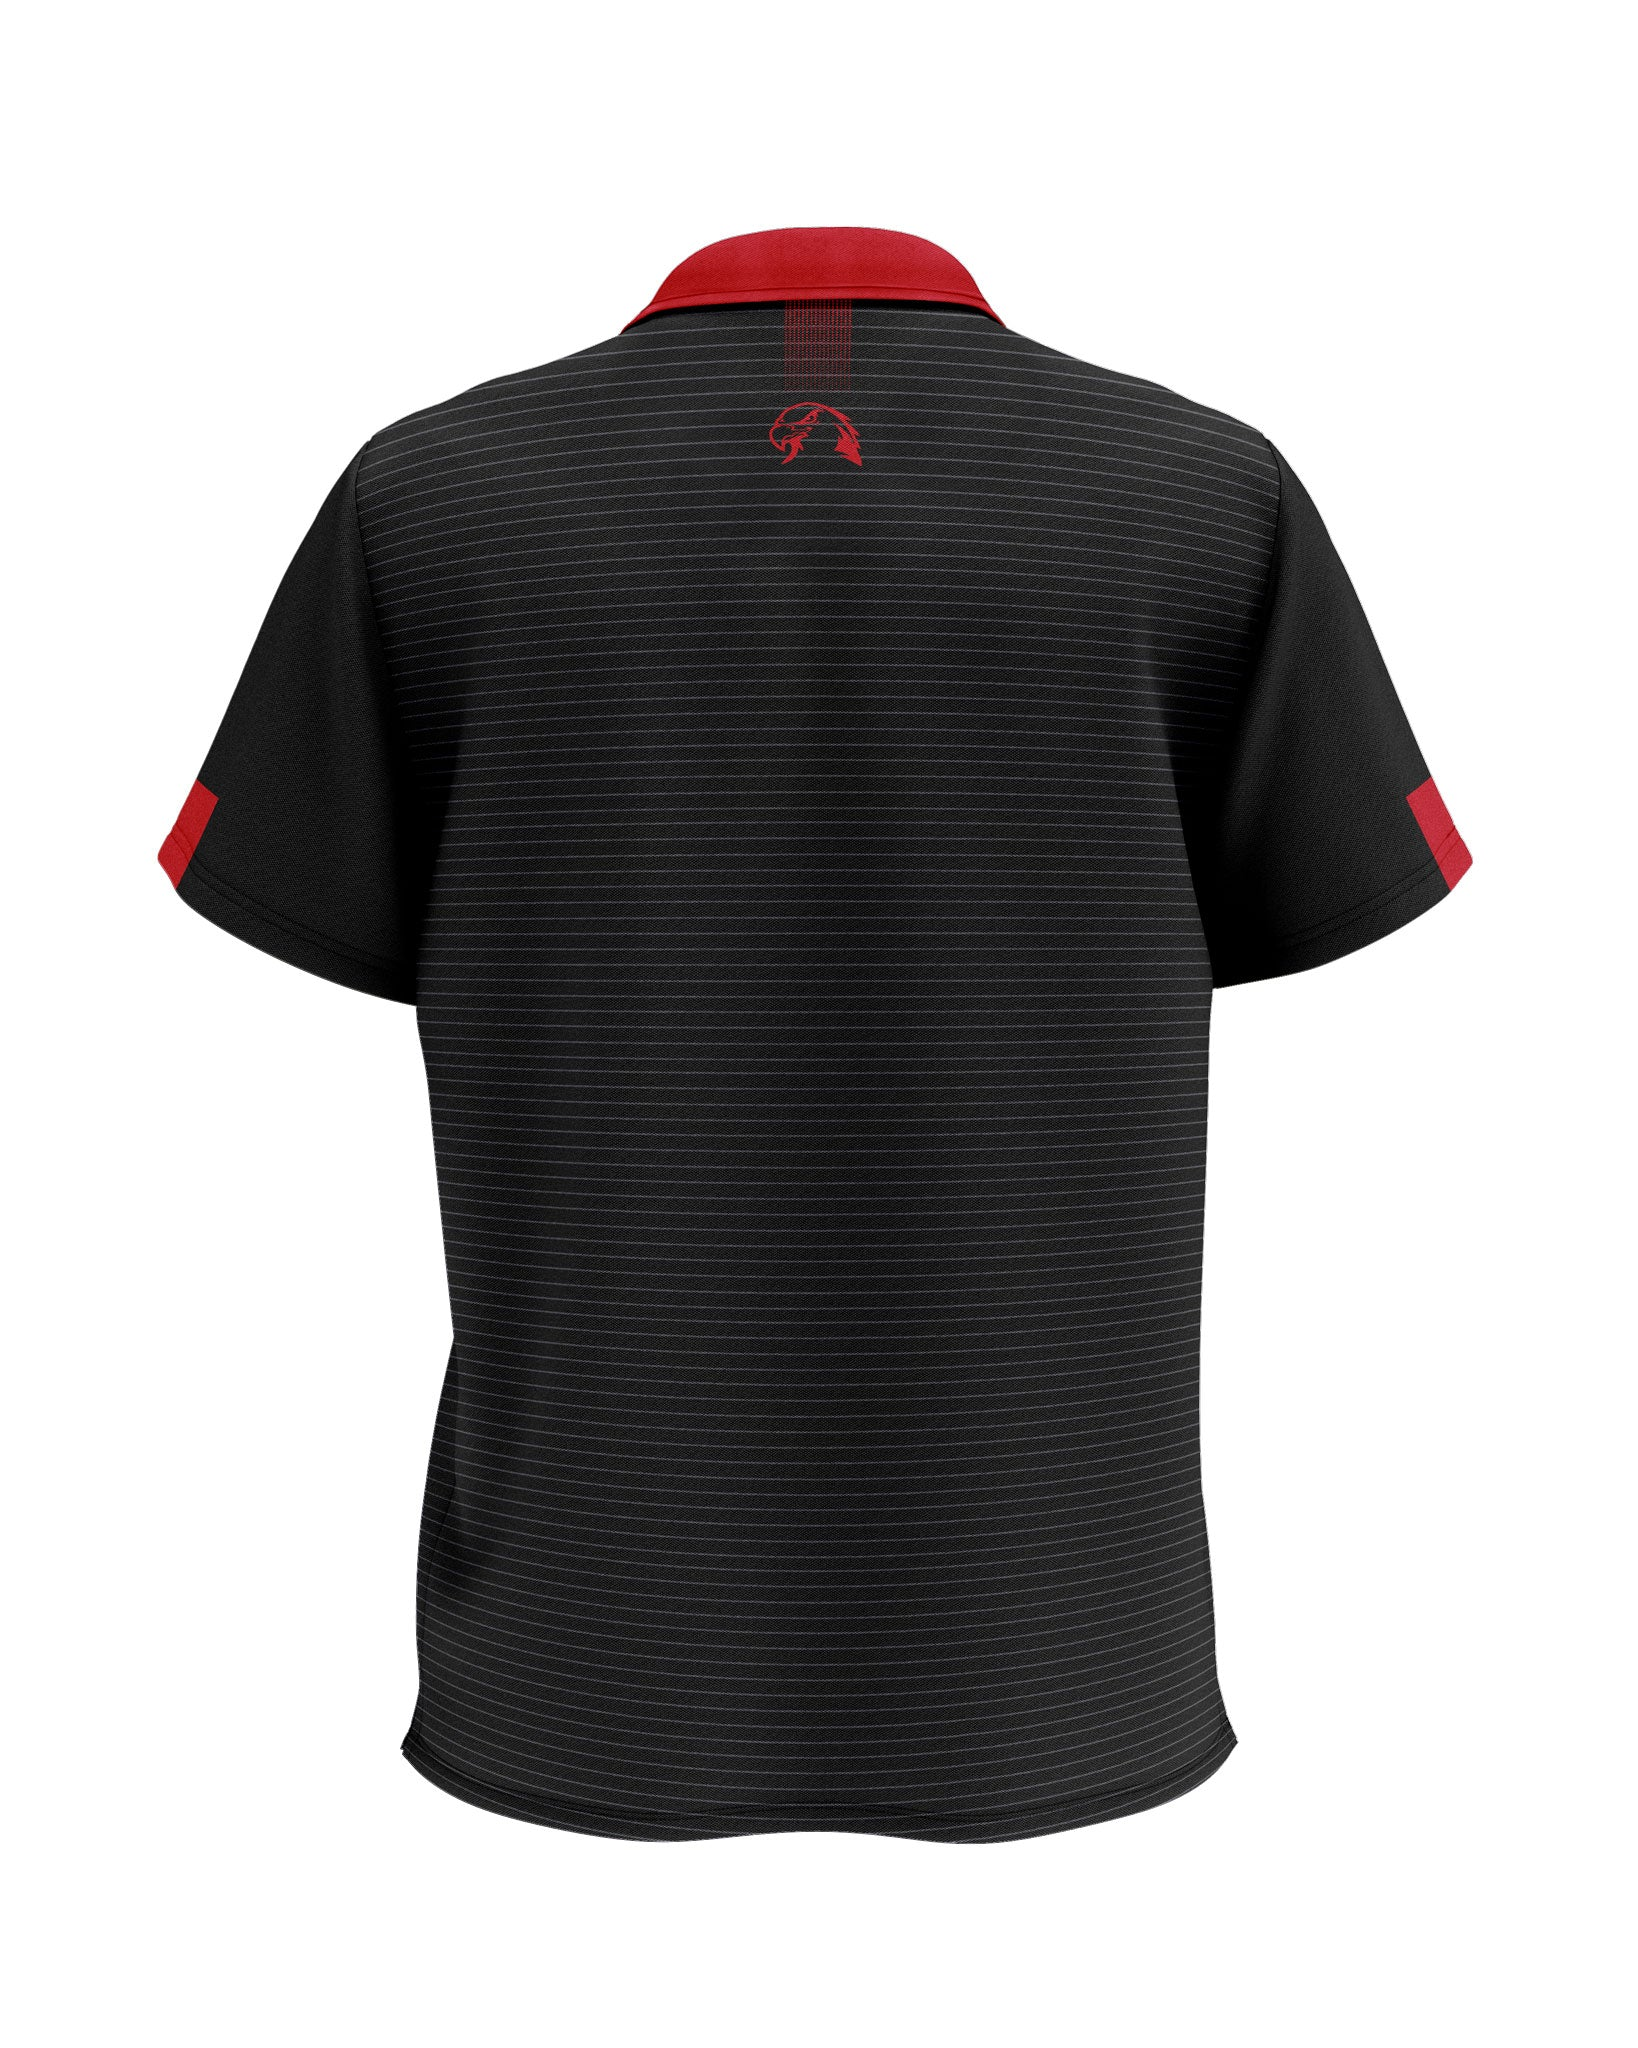 Hawks 20/21 Mens Sublimated Polo